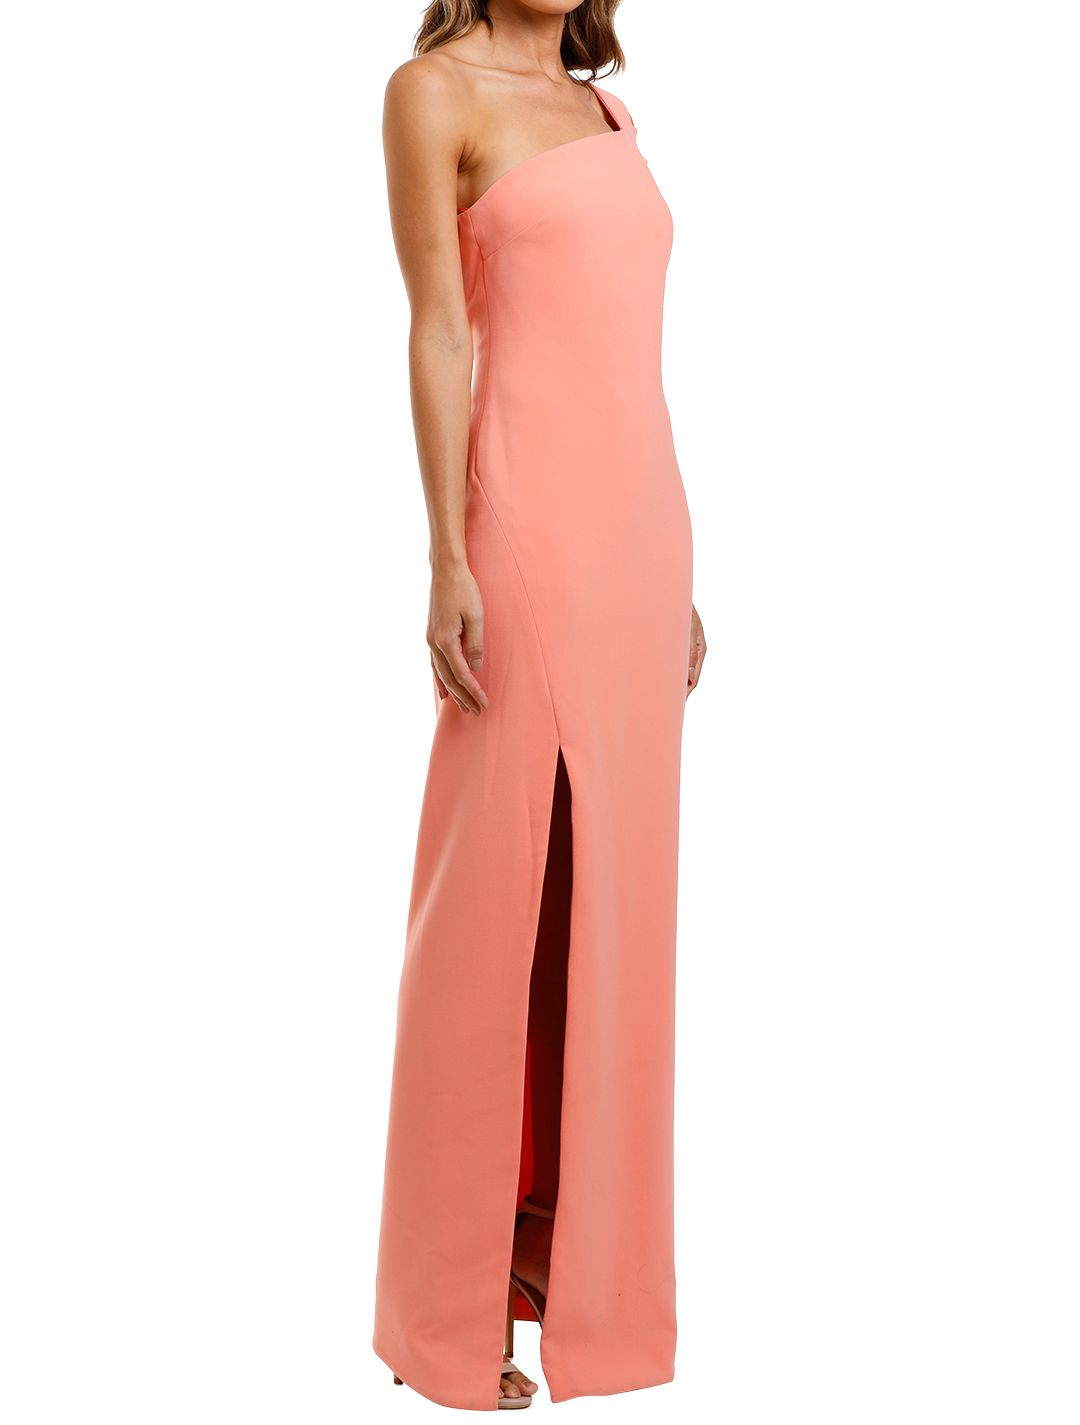 Likely NYC Maxson Gown Apricot Side Split